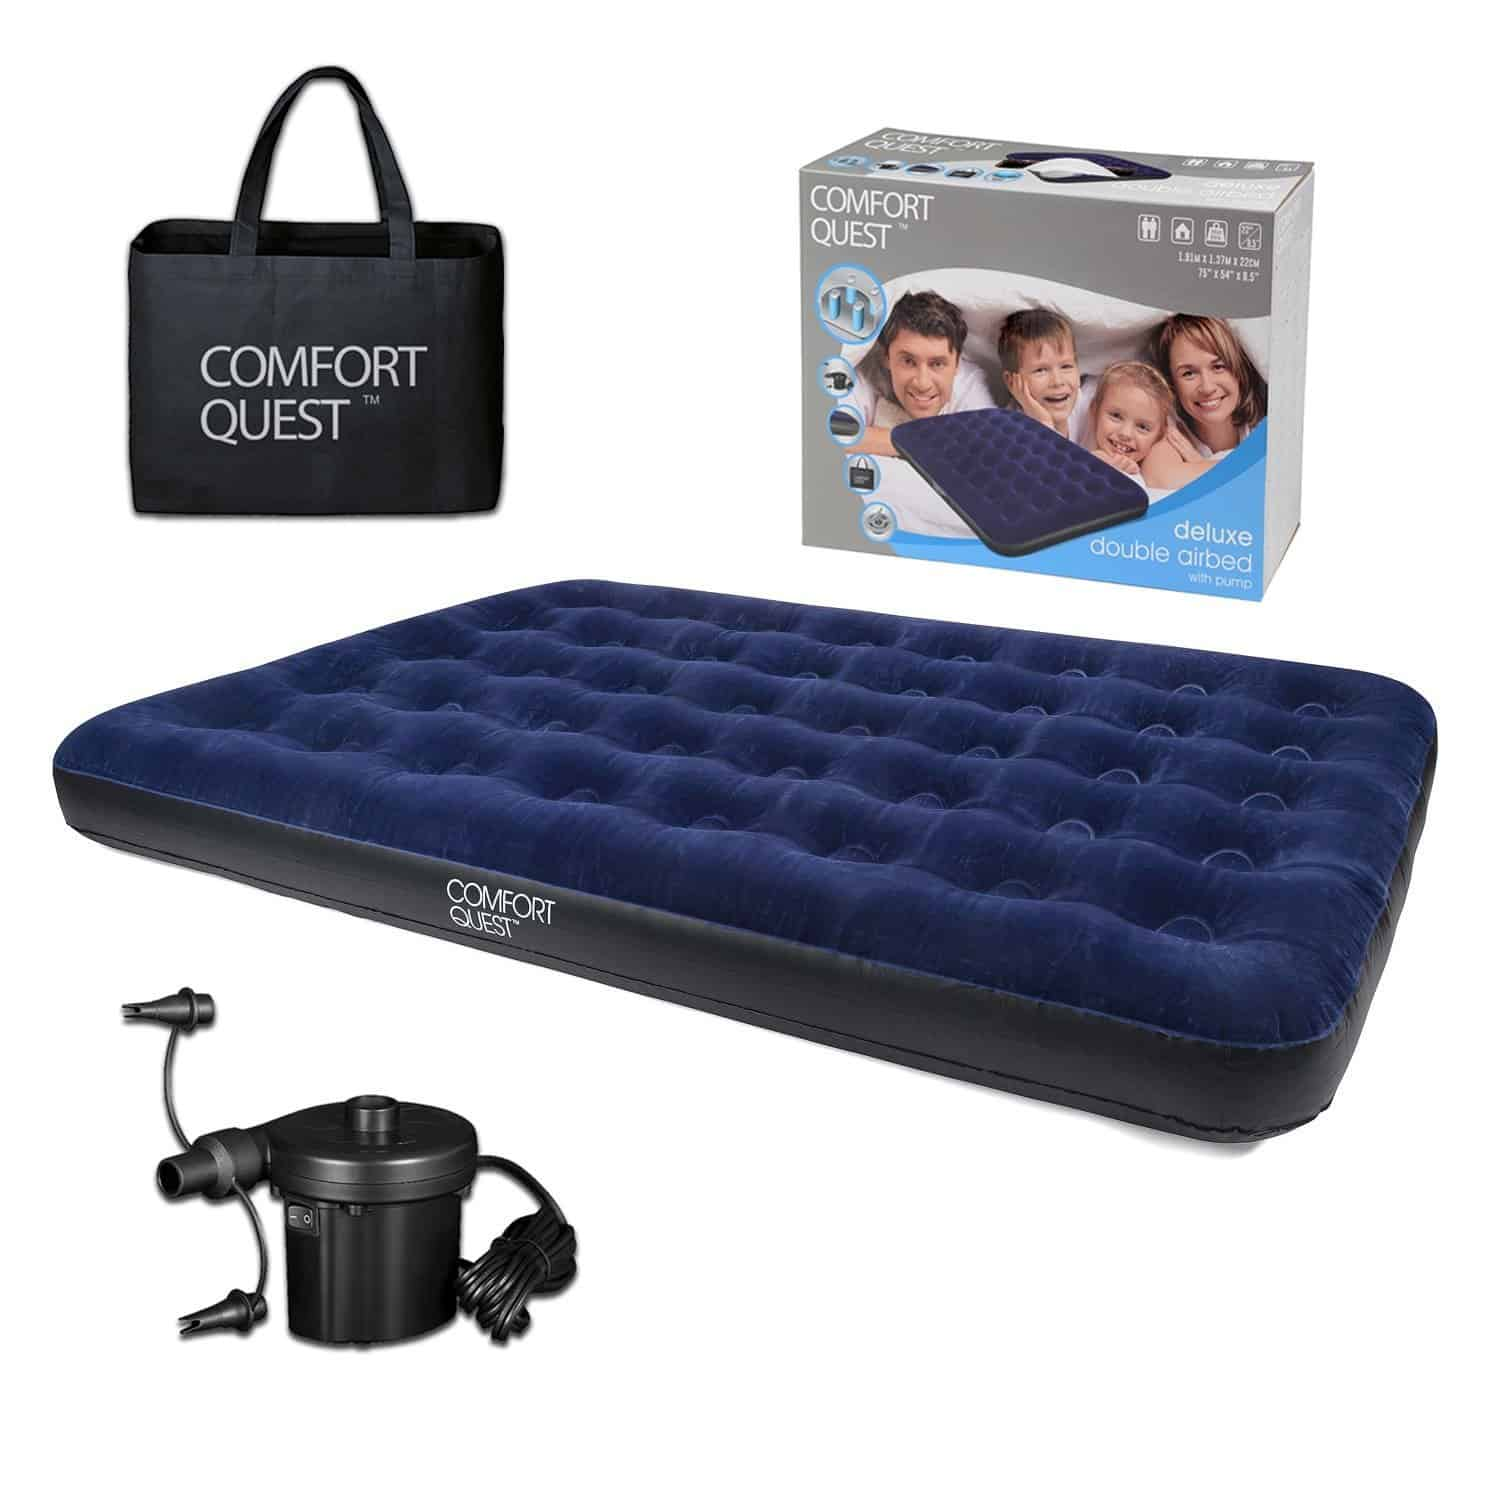 Best Camping Mattress for Couples – Comfort Quest